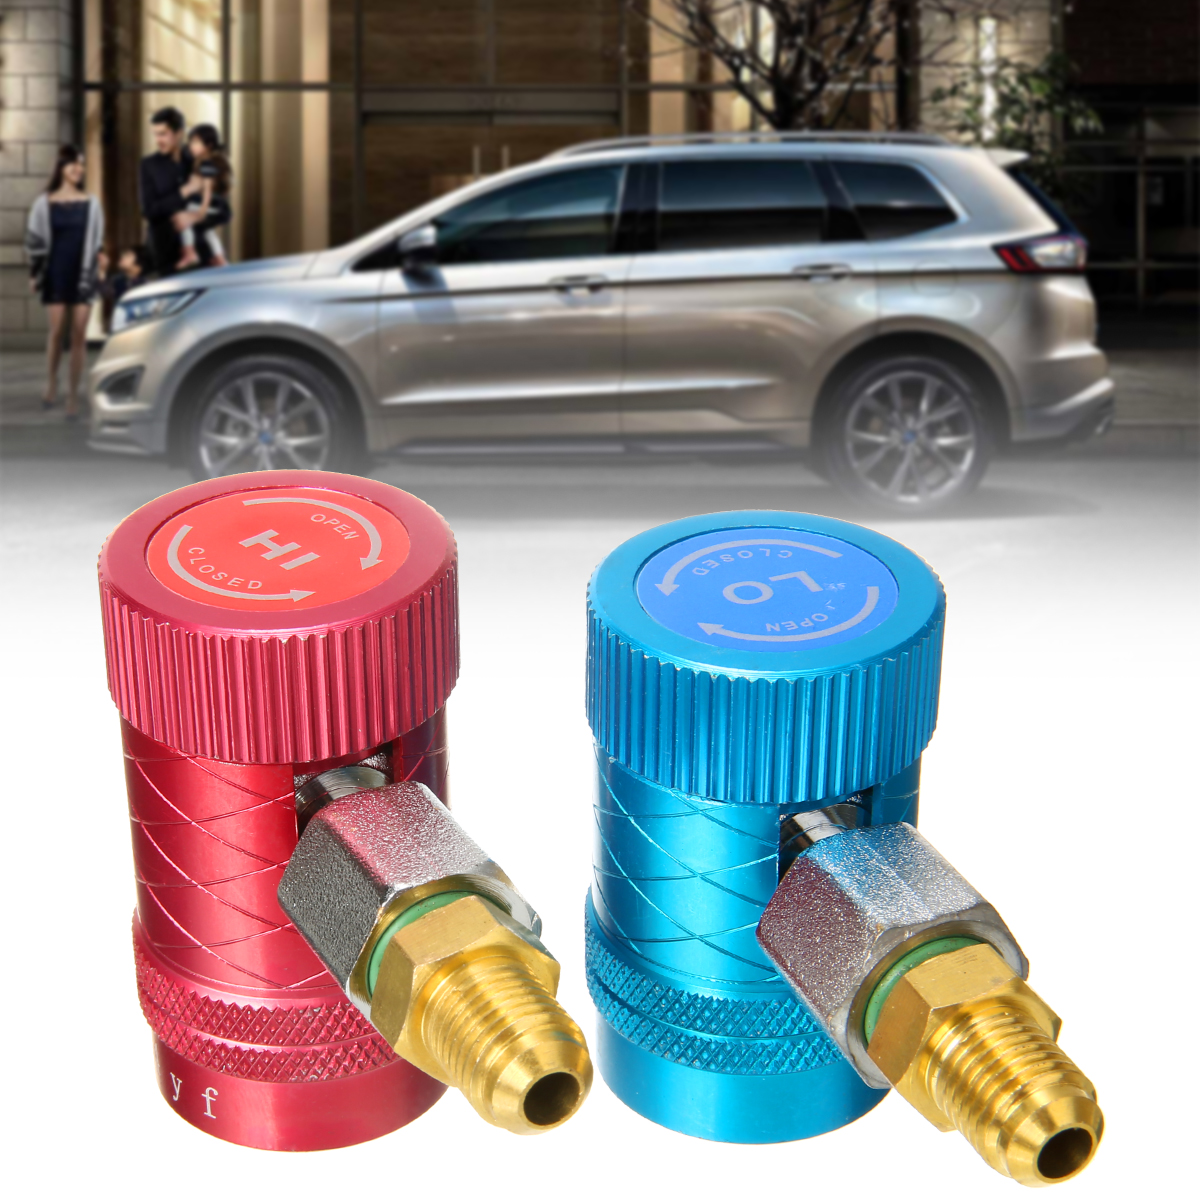 1 Pair R1234yf A/C Quick Adapter Fittings For Automotive Air Conditioning Adjustable Quick Coupler Connector